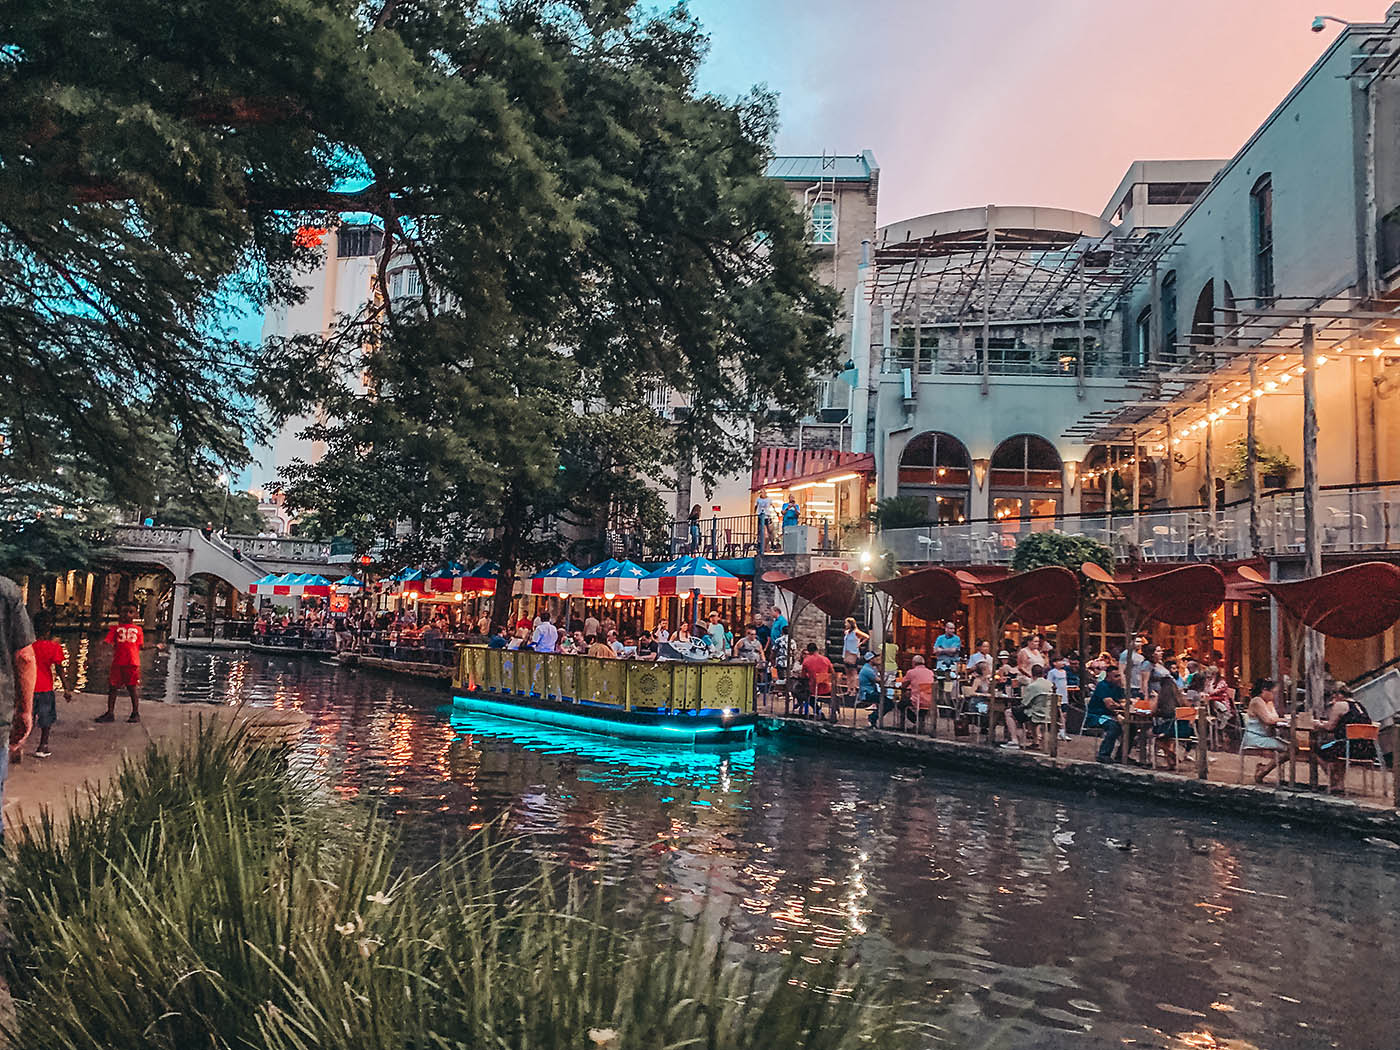 Small boat on San Antonio Riverwalk at sunset with lights